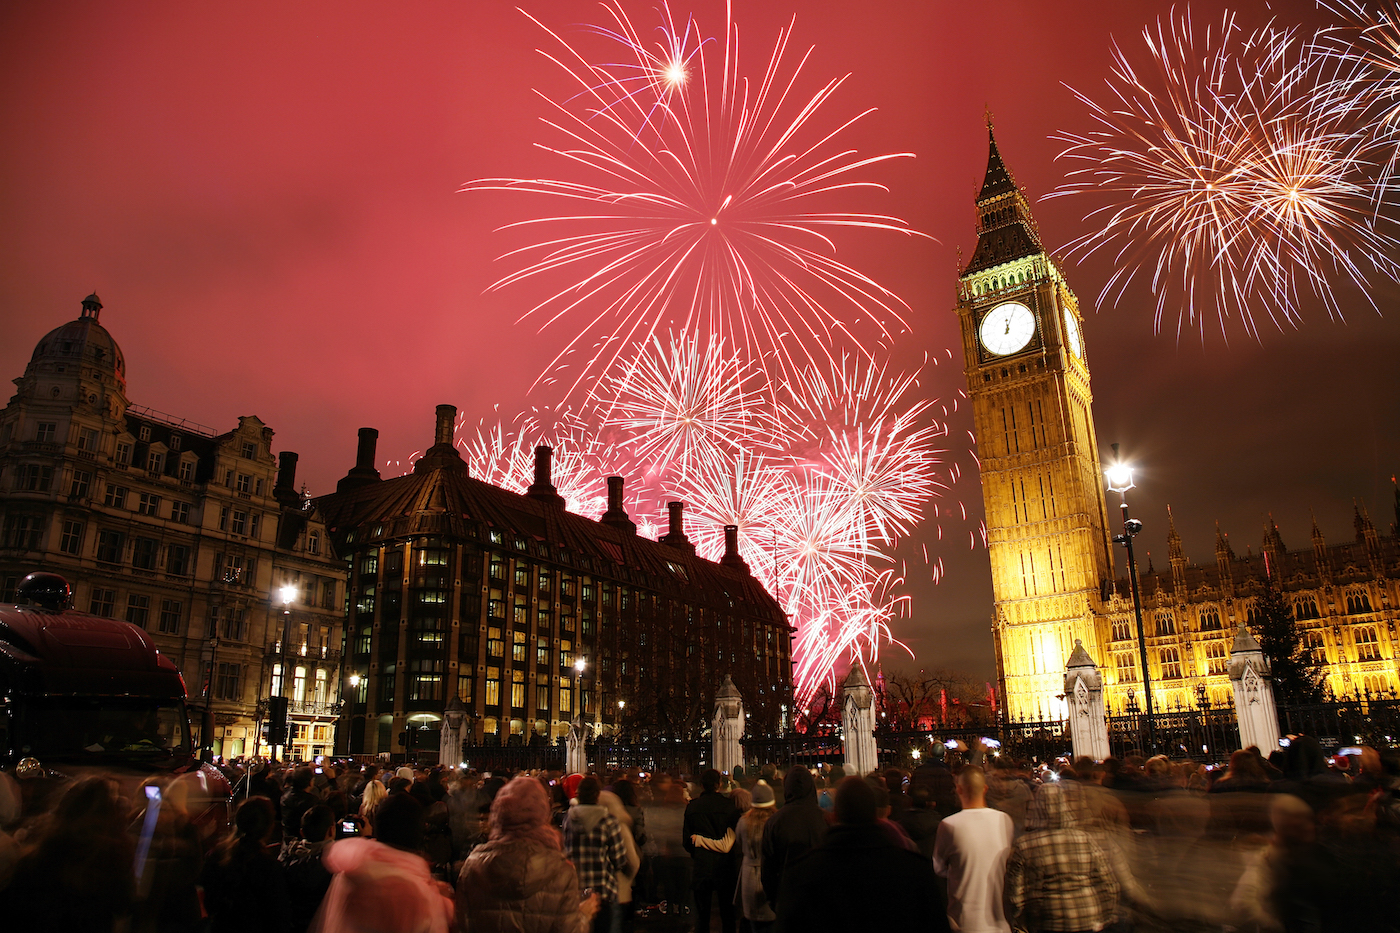 Crowds mesmerised by spectacular fireworks in London